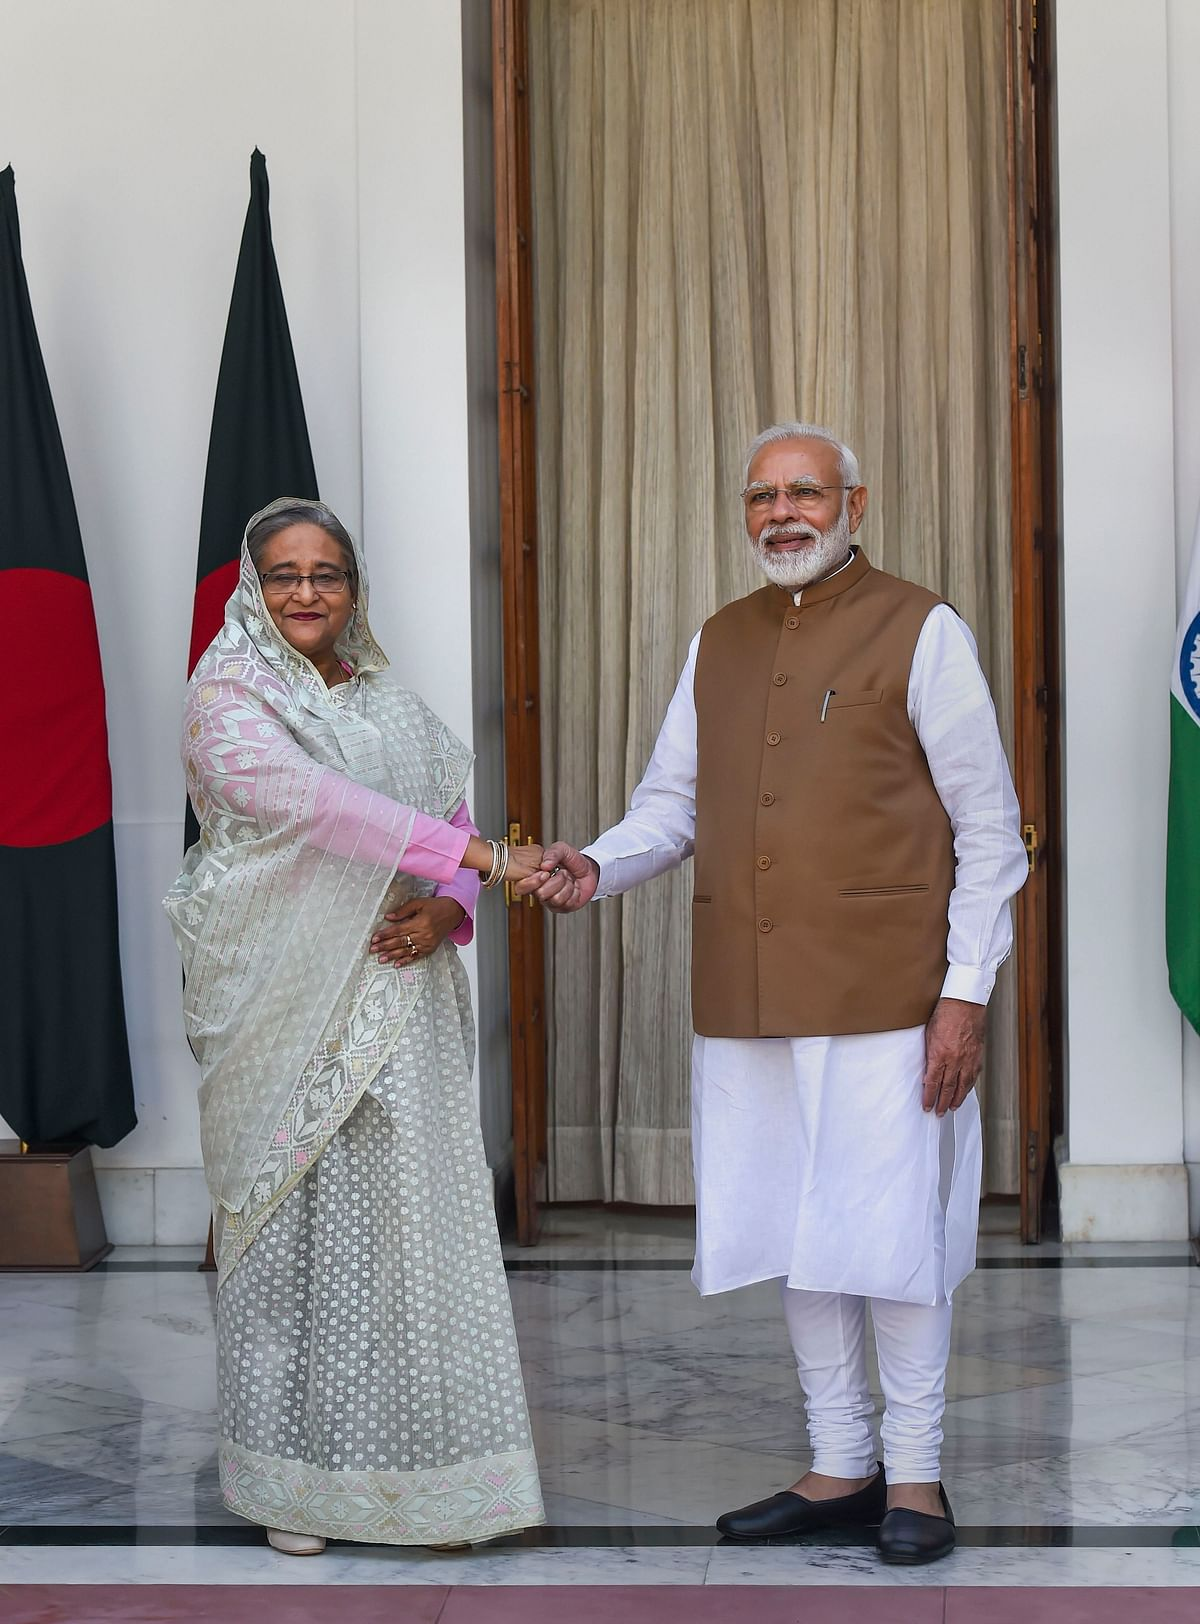 Prime Minister Narendra Modi shakes hands with his Bangladeshi counterpart Sheikh Hasina prior to a meeting at Hyderabad House in New Delhi, on Oct. 5, 2019. (Photographer: Atul Yadav/PTI)